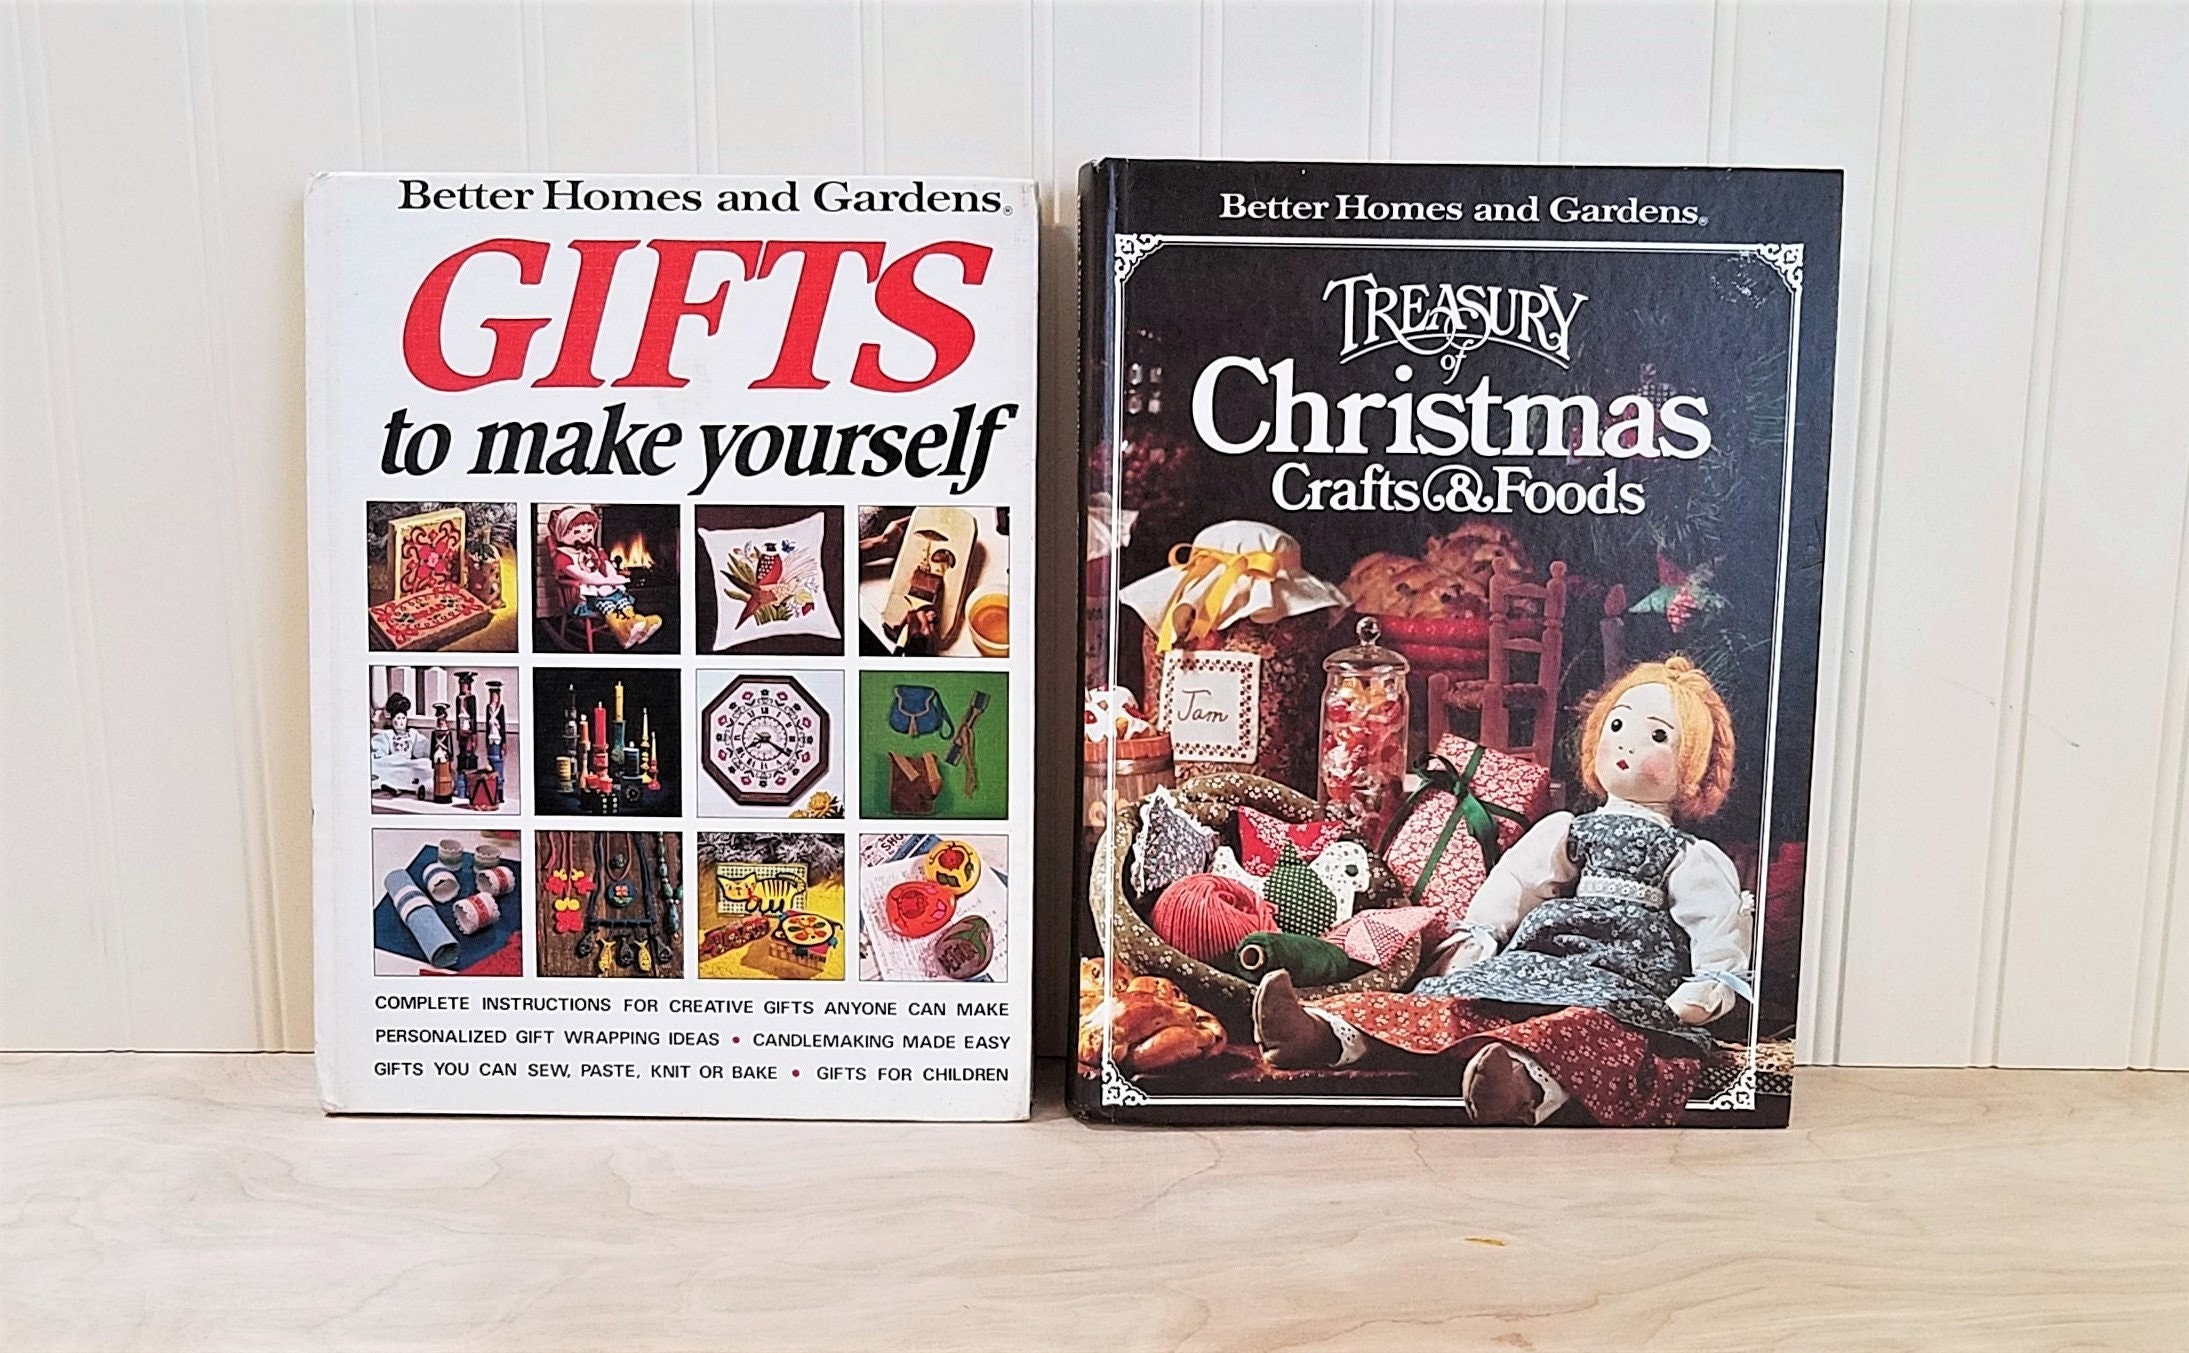 Vintage christmas books 2 better homes and gardens gifts to make yourself treasury of christmas crafts and foods book diy christmas decor zoom solutioingenieria Choice Image